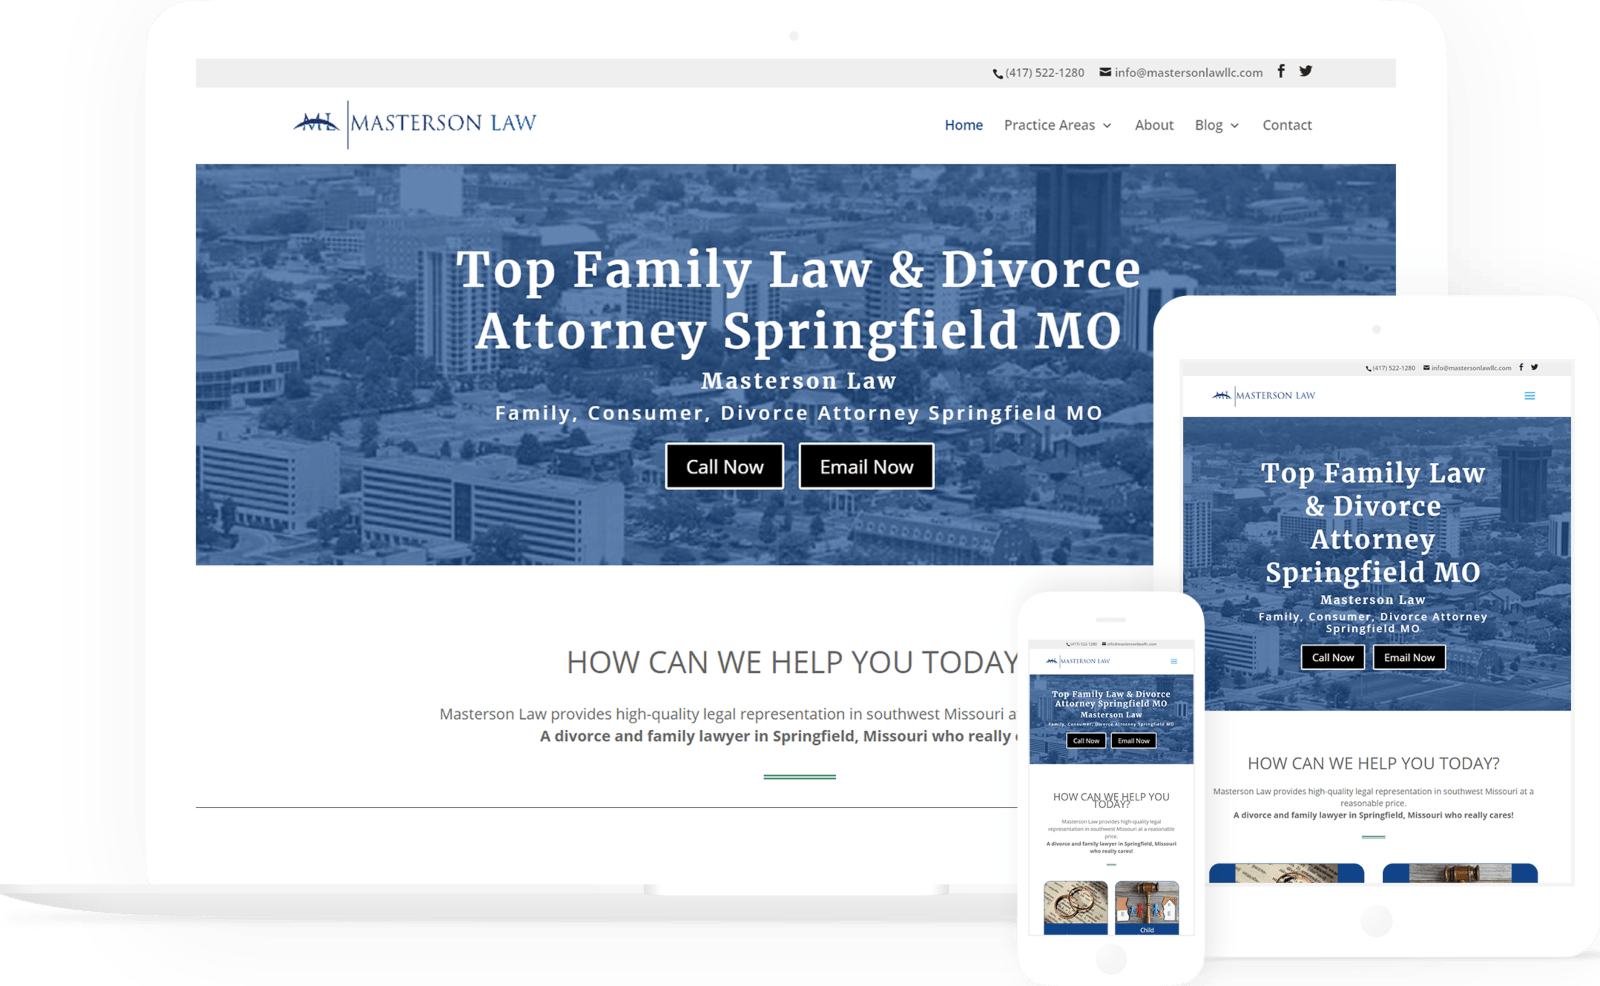 masterson law featured image